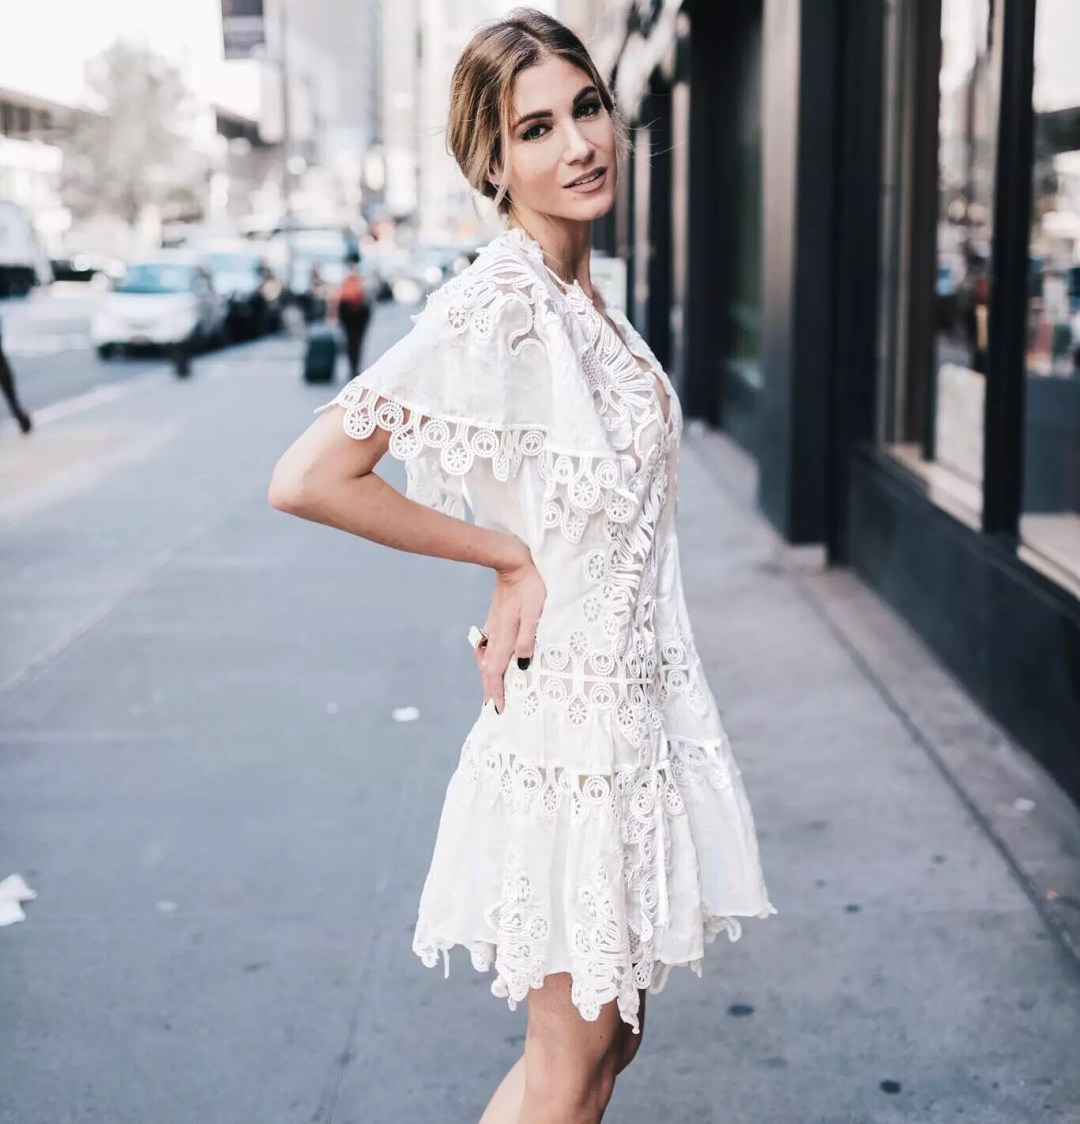 blogger-crush-we-the-classy-venessa-kaufman-alley-girl-new-york-fashion-blog